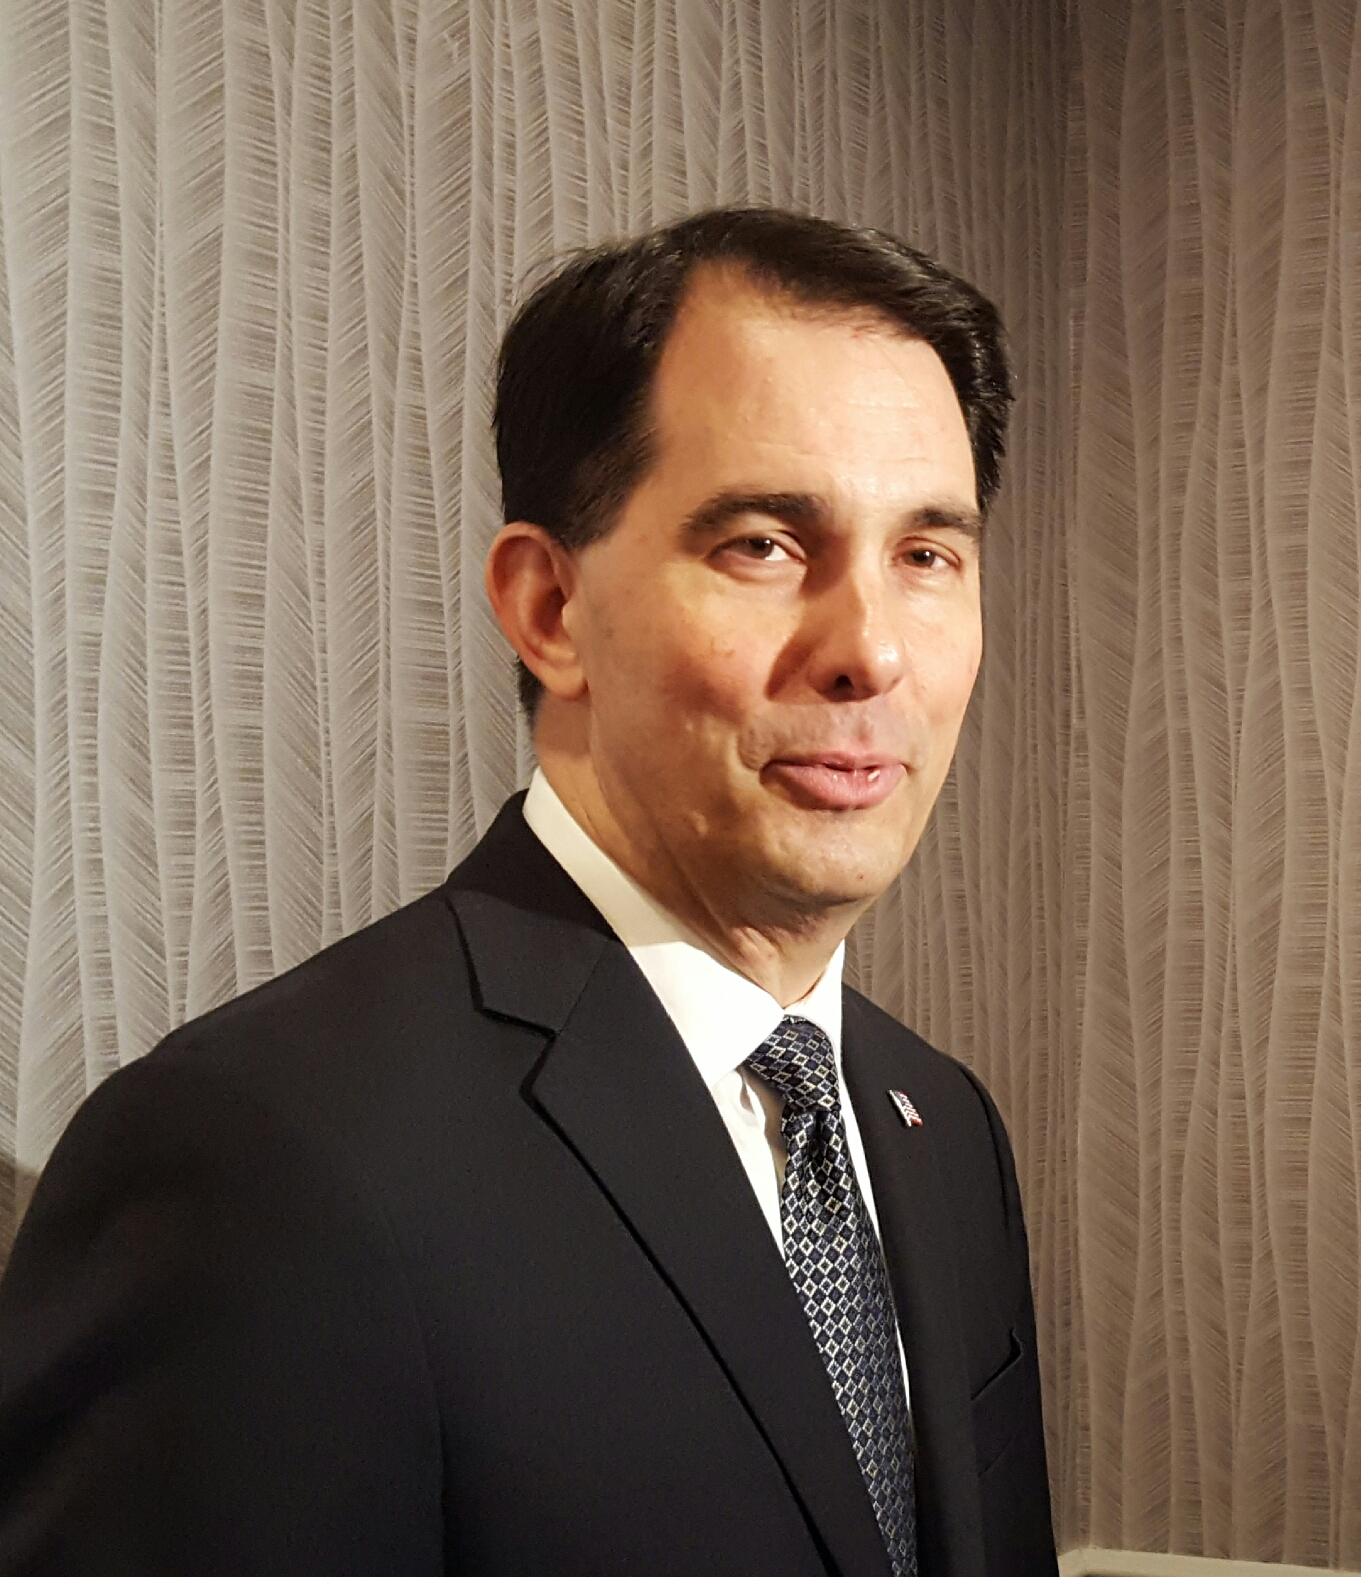 Governor Walker concerned about complacency